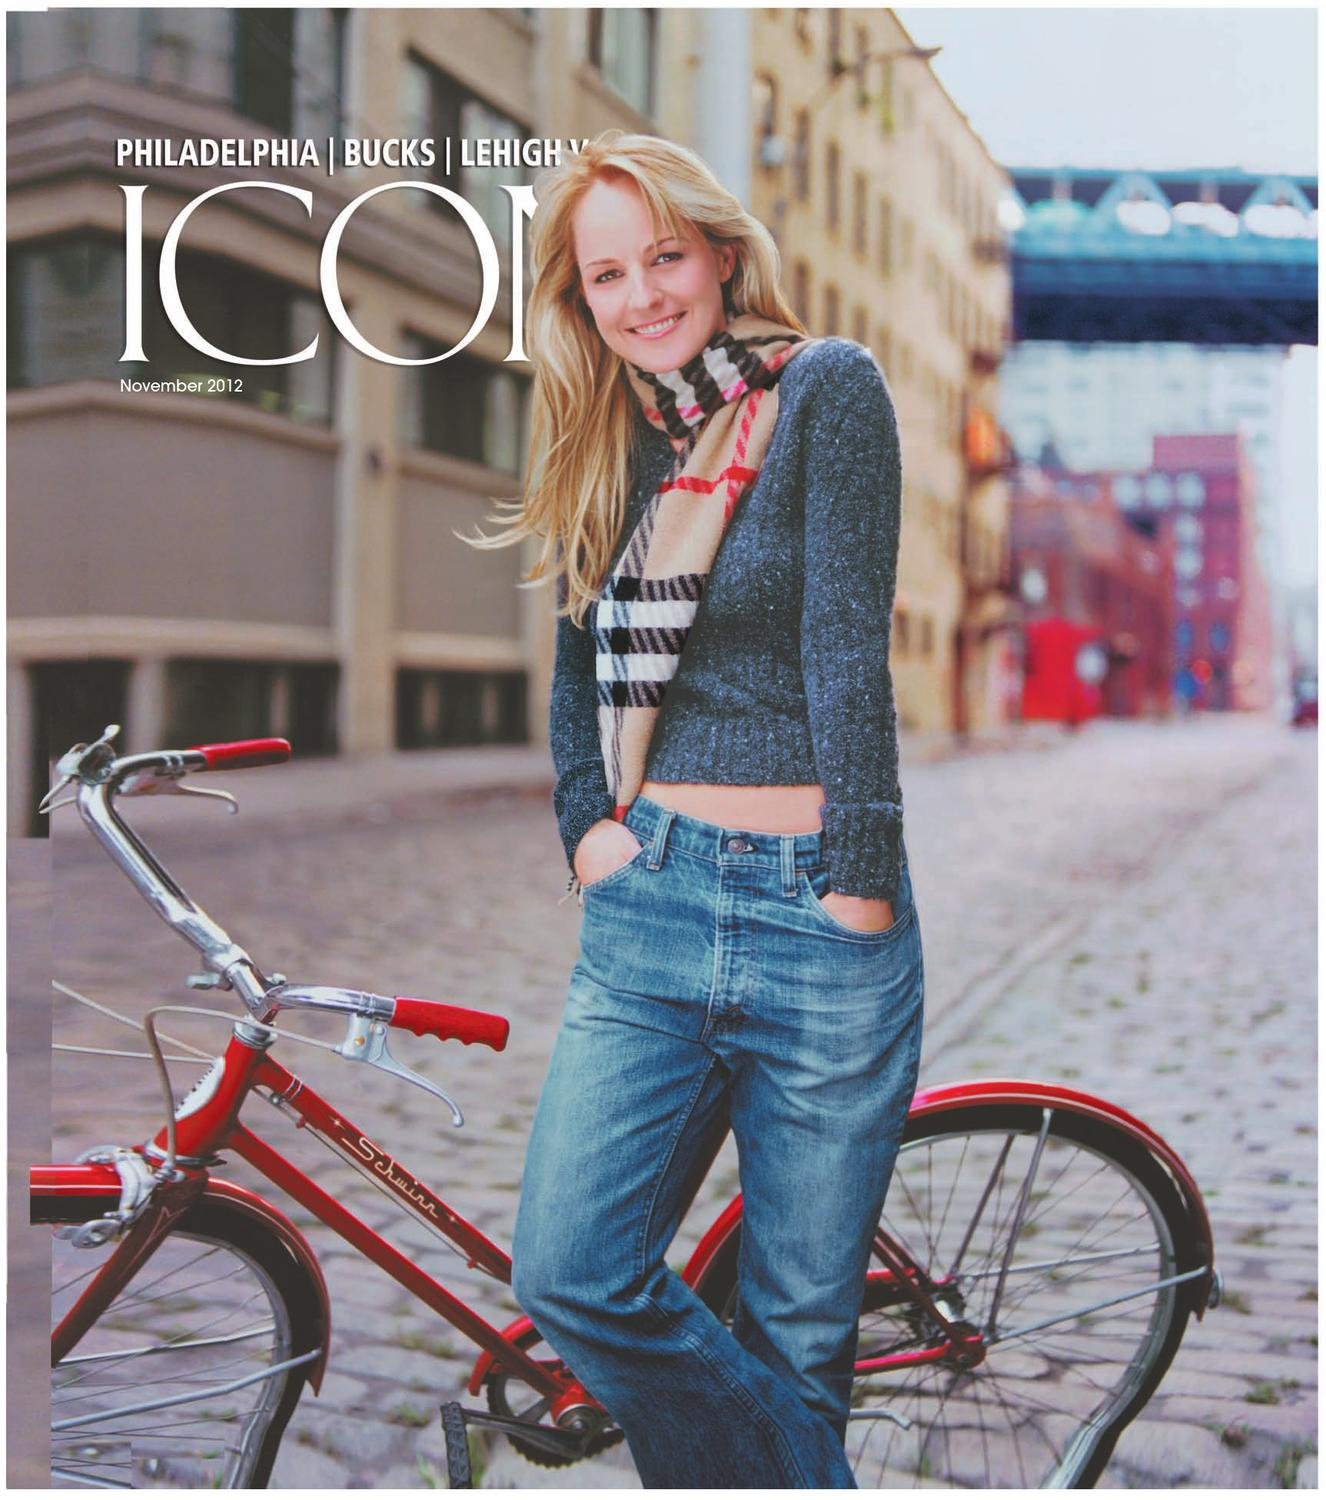 17df53e1 ICON by ICON Magazine - issuu